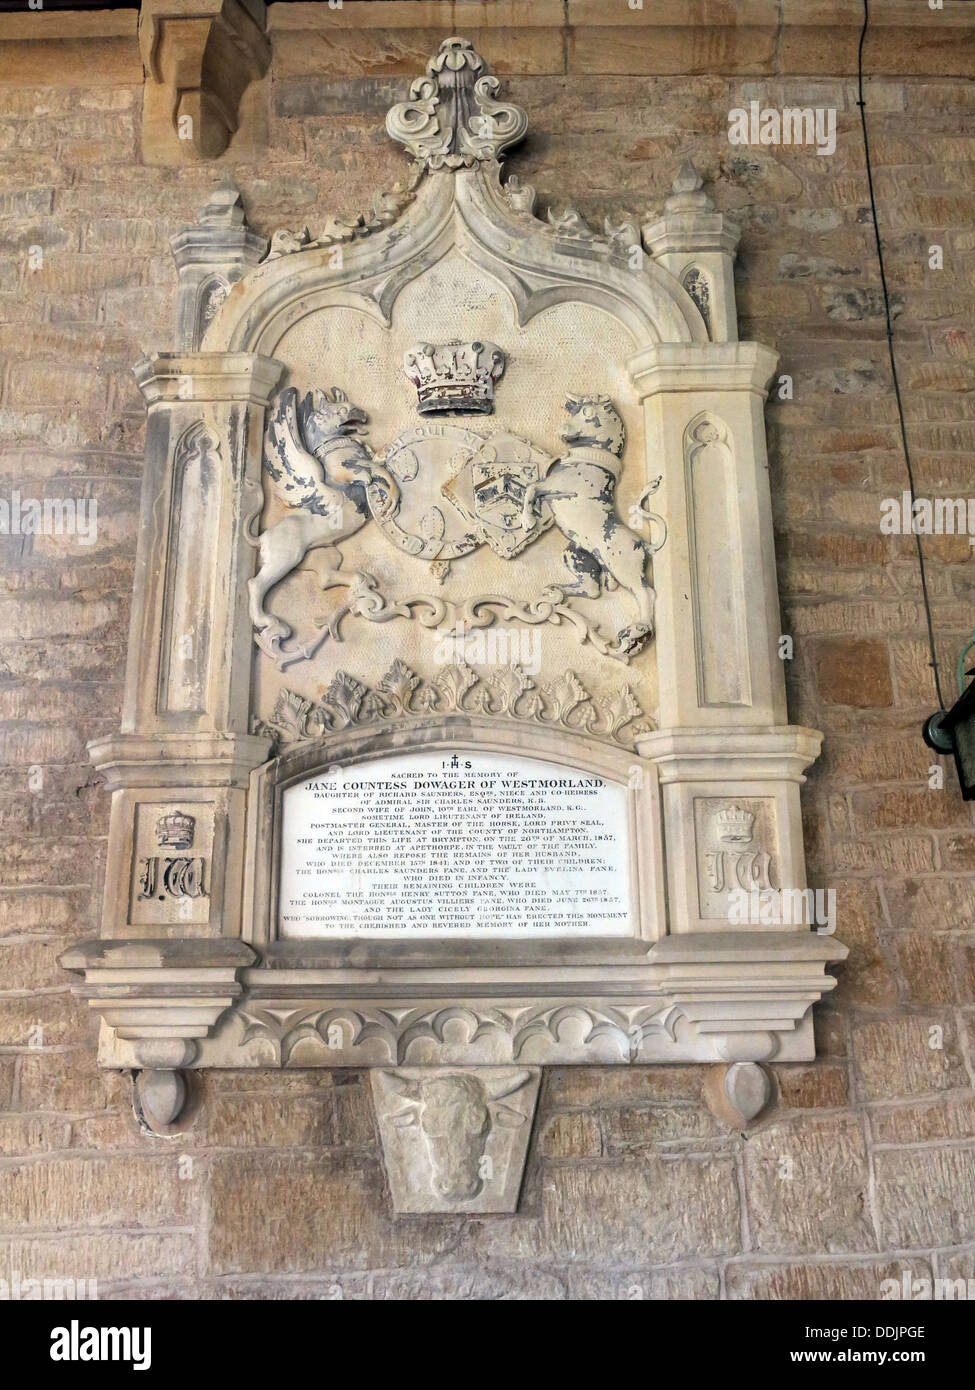 Memorial to Jane, Countess Dowager of Westmorland ( 1857). Buried at Aperthorpe, Brympton d'Evercy,  St Andrew - Stock Image